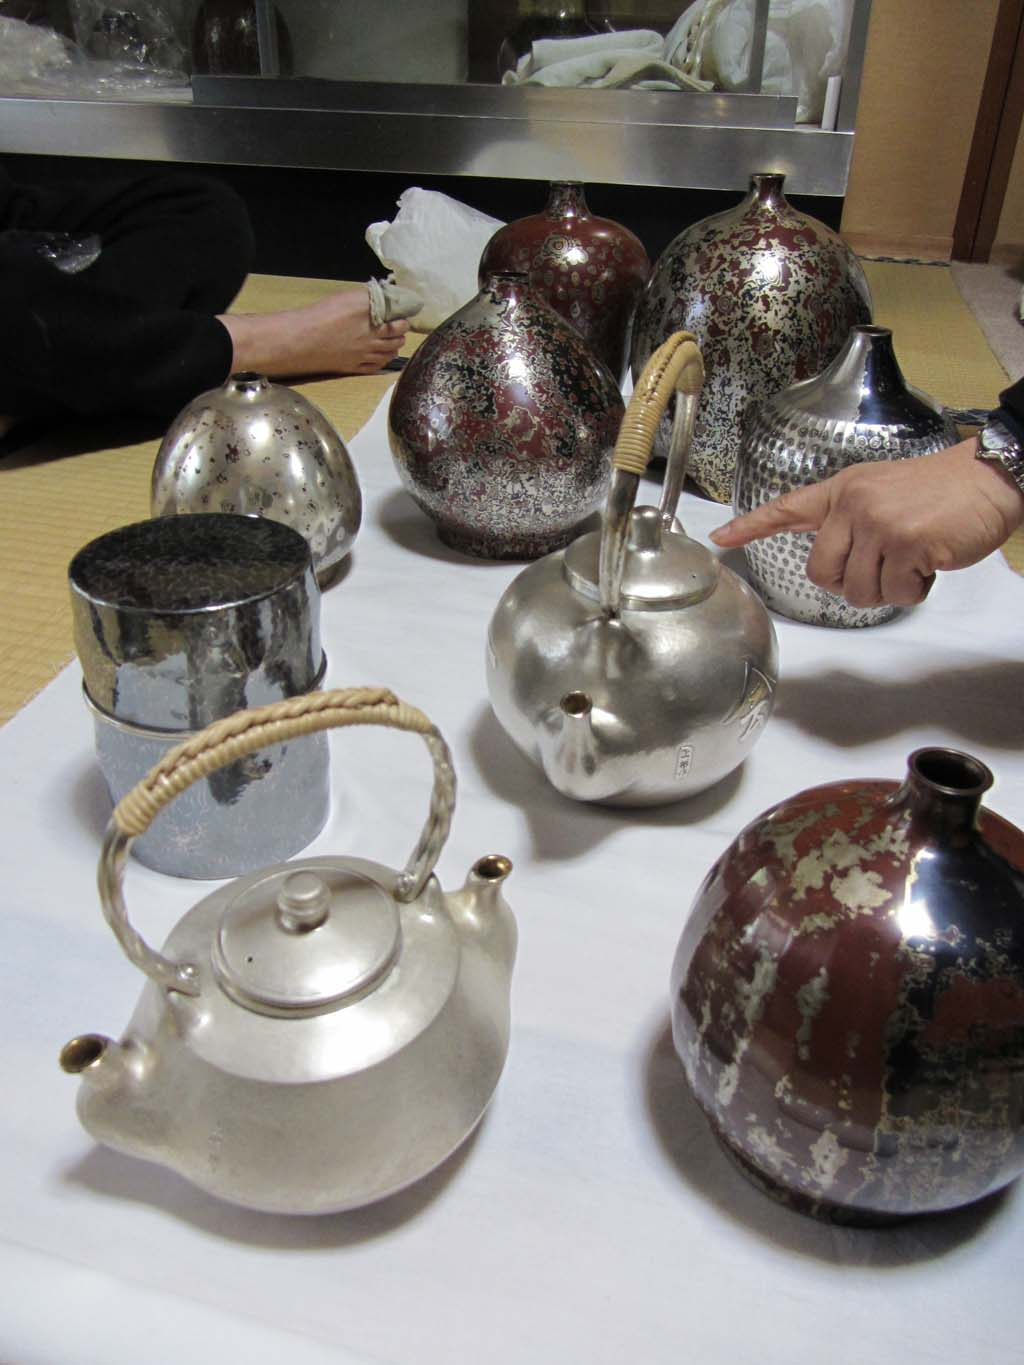 A collection of silver, mokumé game, and shibuichi vessels Uemo-san has made over the years.